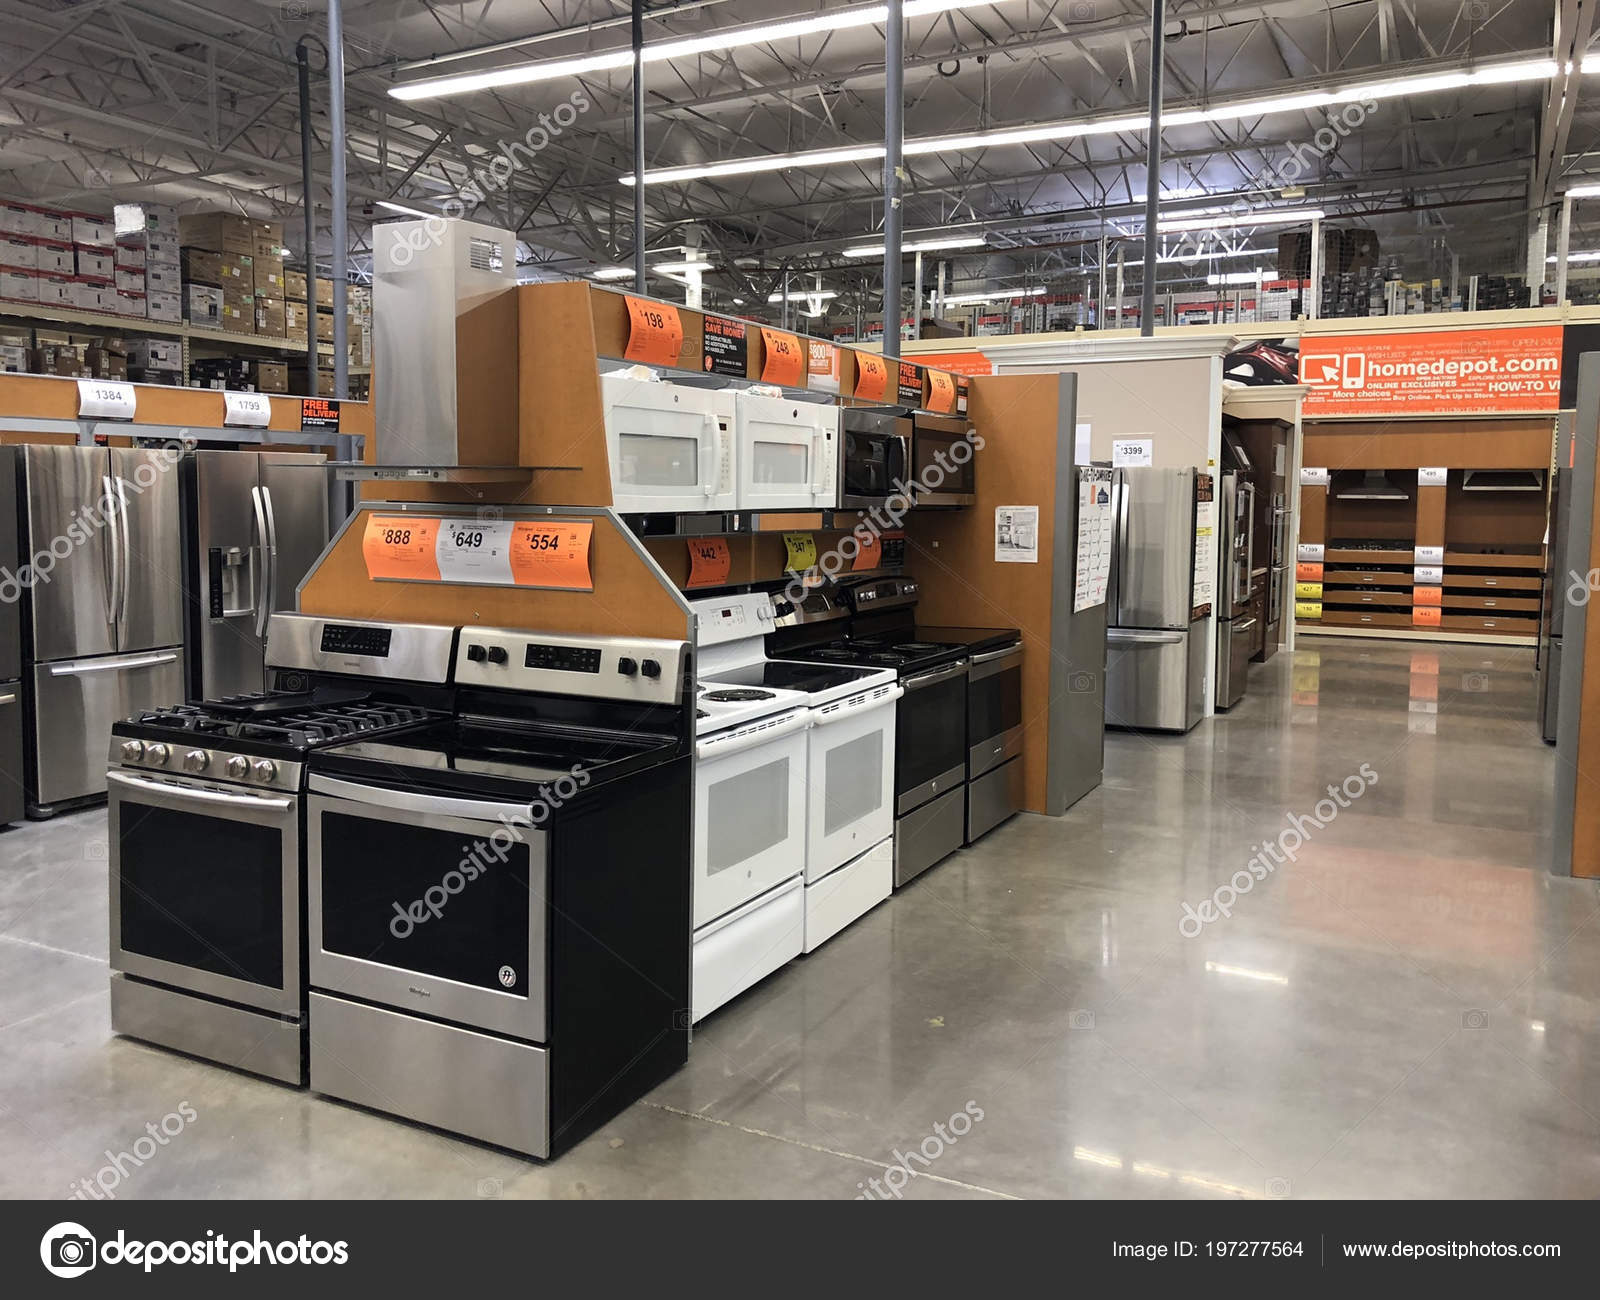 b40531c70c4 Appliances being sold inside the Home Depot store with a variety of  products. Photo was taken in Gilbert Arizona located ...